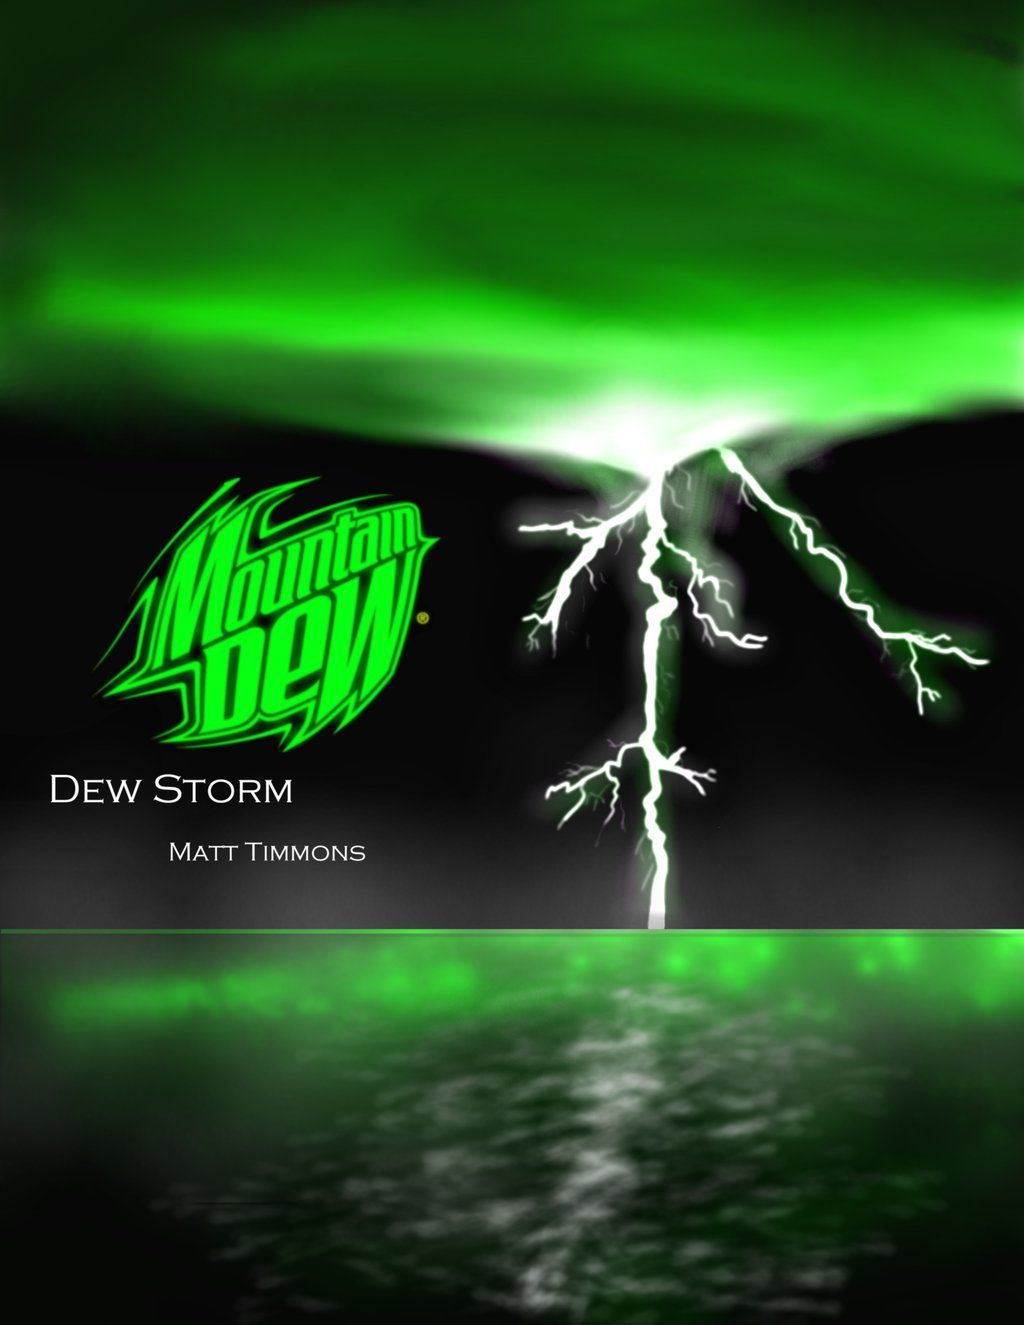 Mountain Dew Wallpapers Http Wallpaperzoo Com Mountain Dew